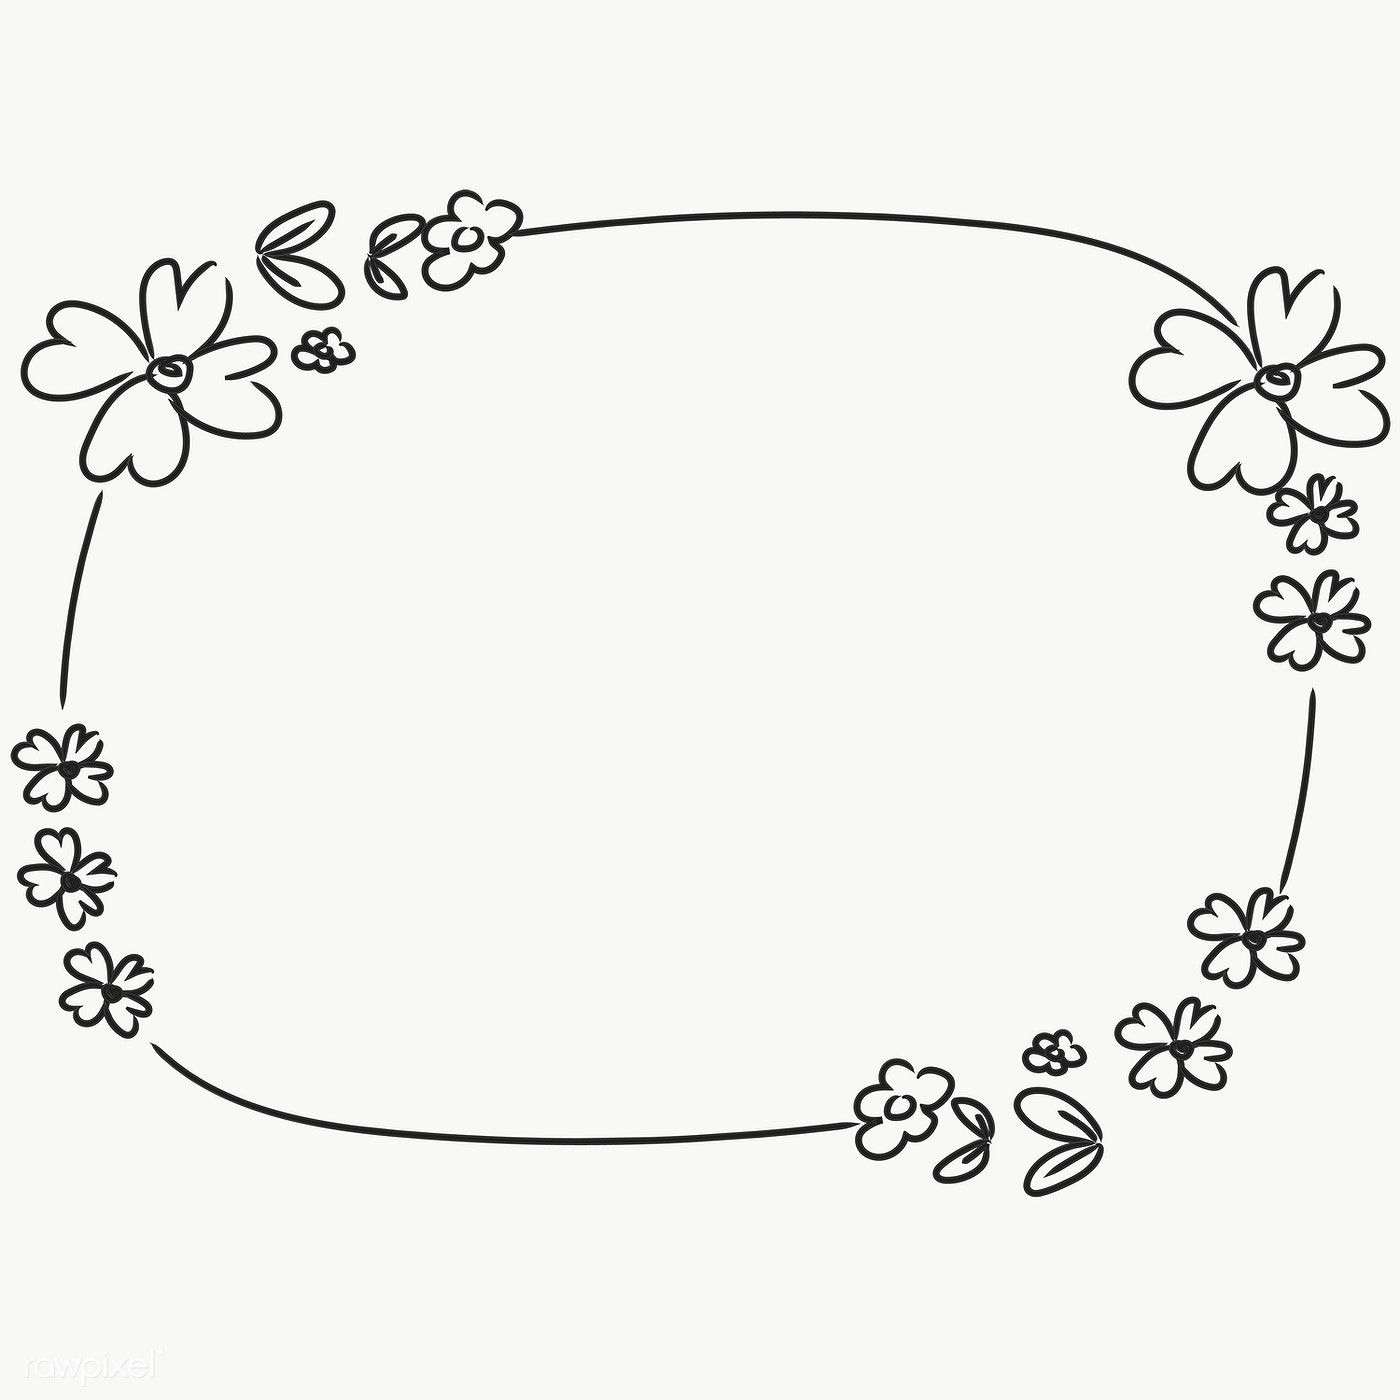 Hand Drawn Flower Wreath Transparent Png Free Image By Rawpixel Com Pimmy Hand Drawn Flowers Flower Drawing Flower Wreath Illustration